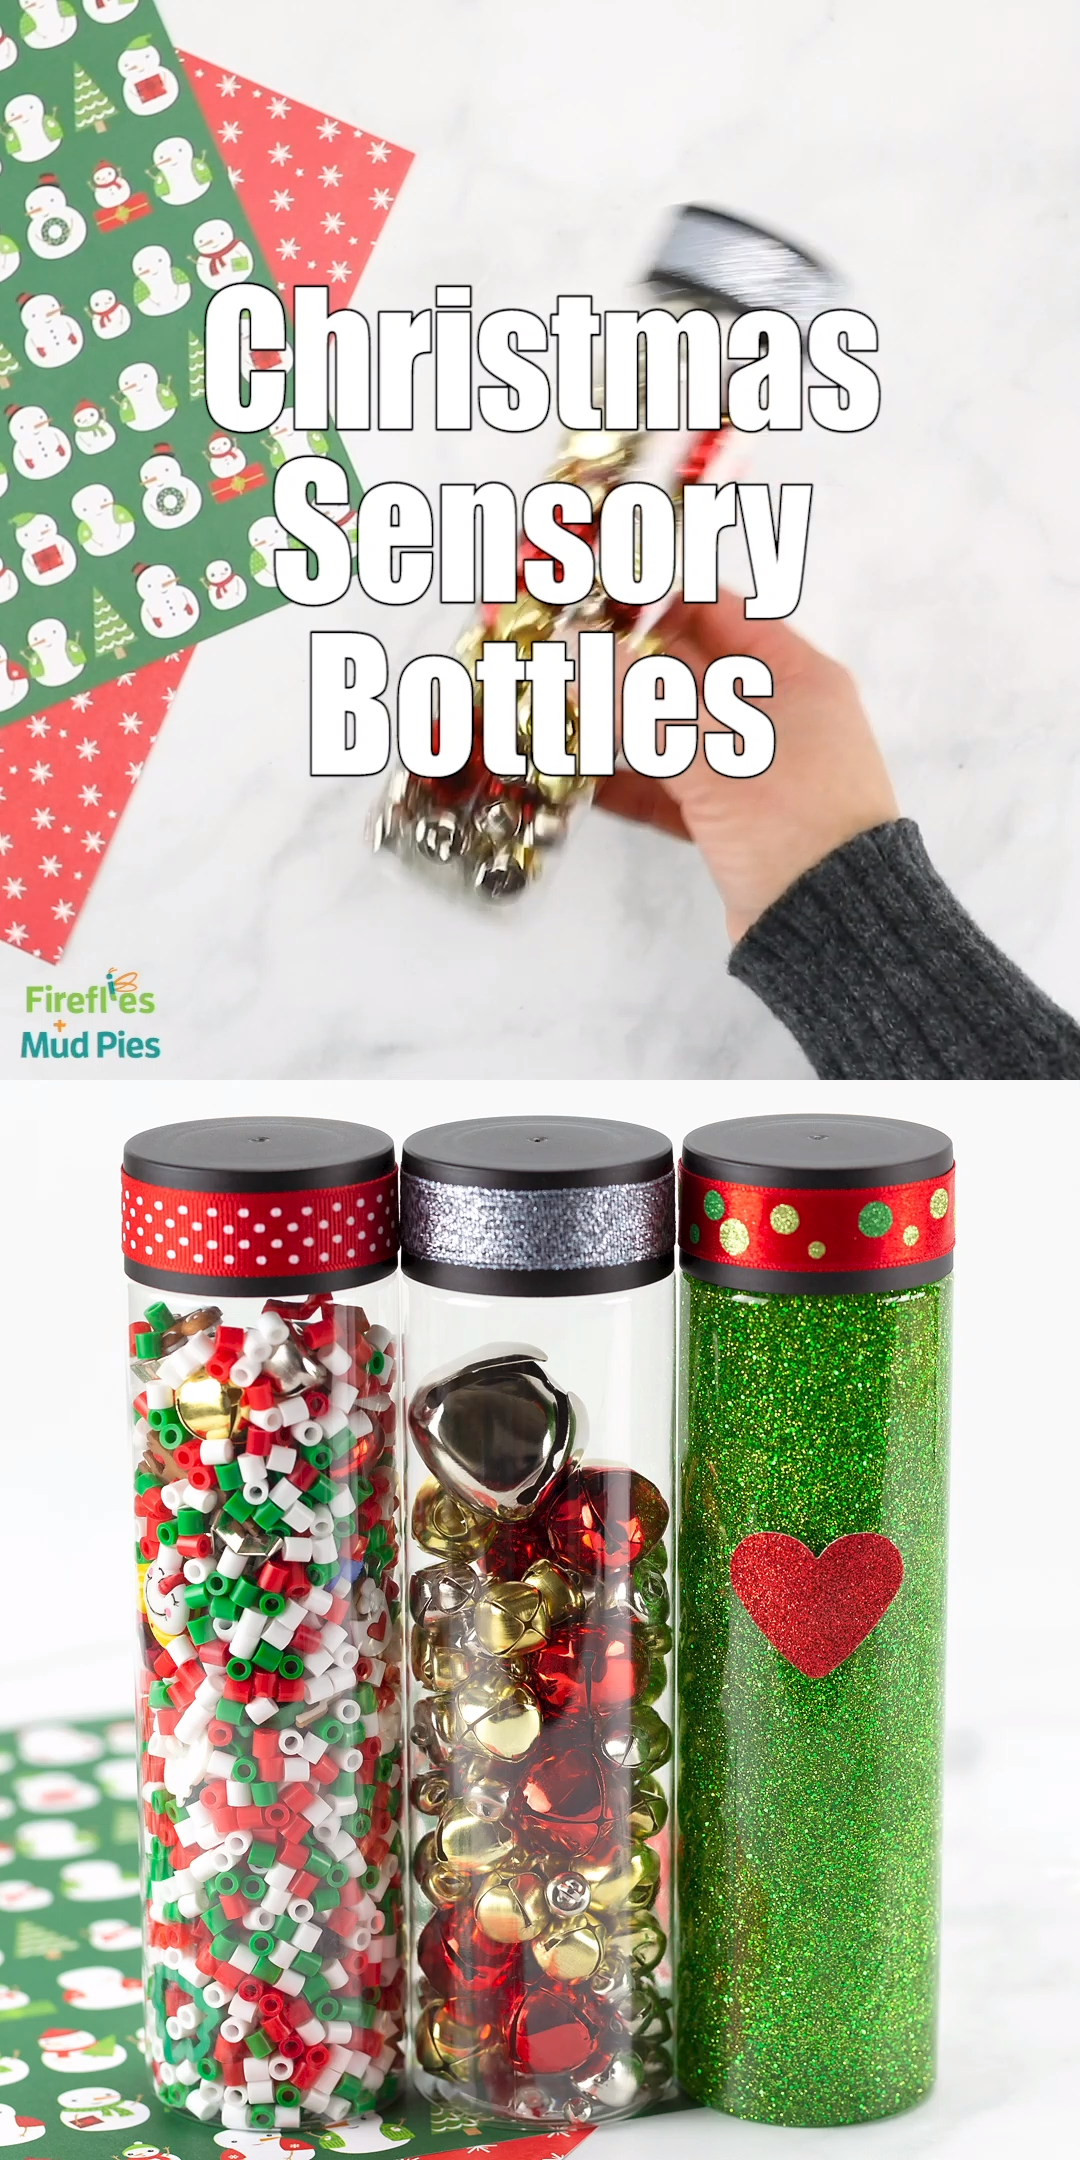 These Christmas Sensory Bottles are fun for babies, toddlers, preschoolers, and older children. They are a fun stocking stuffer for kids and perfect for holiday-themed sensory play at home, in the classroom, or on the road! #christmas #sensorybottles #glittersensorybottles